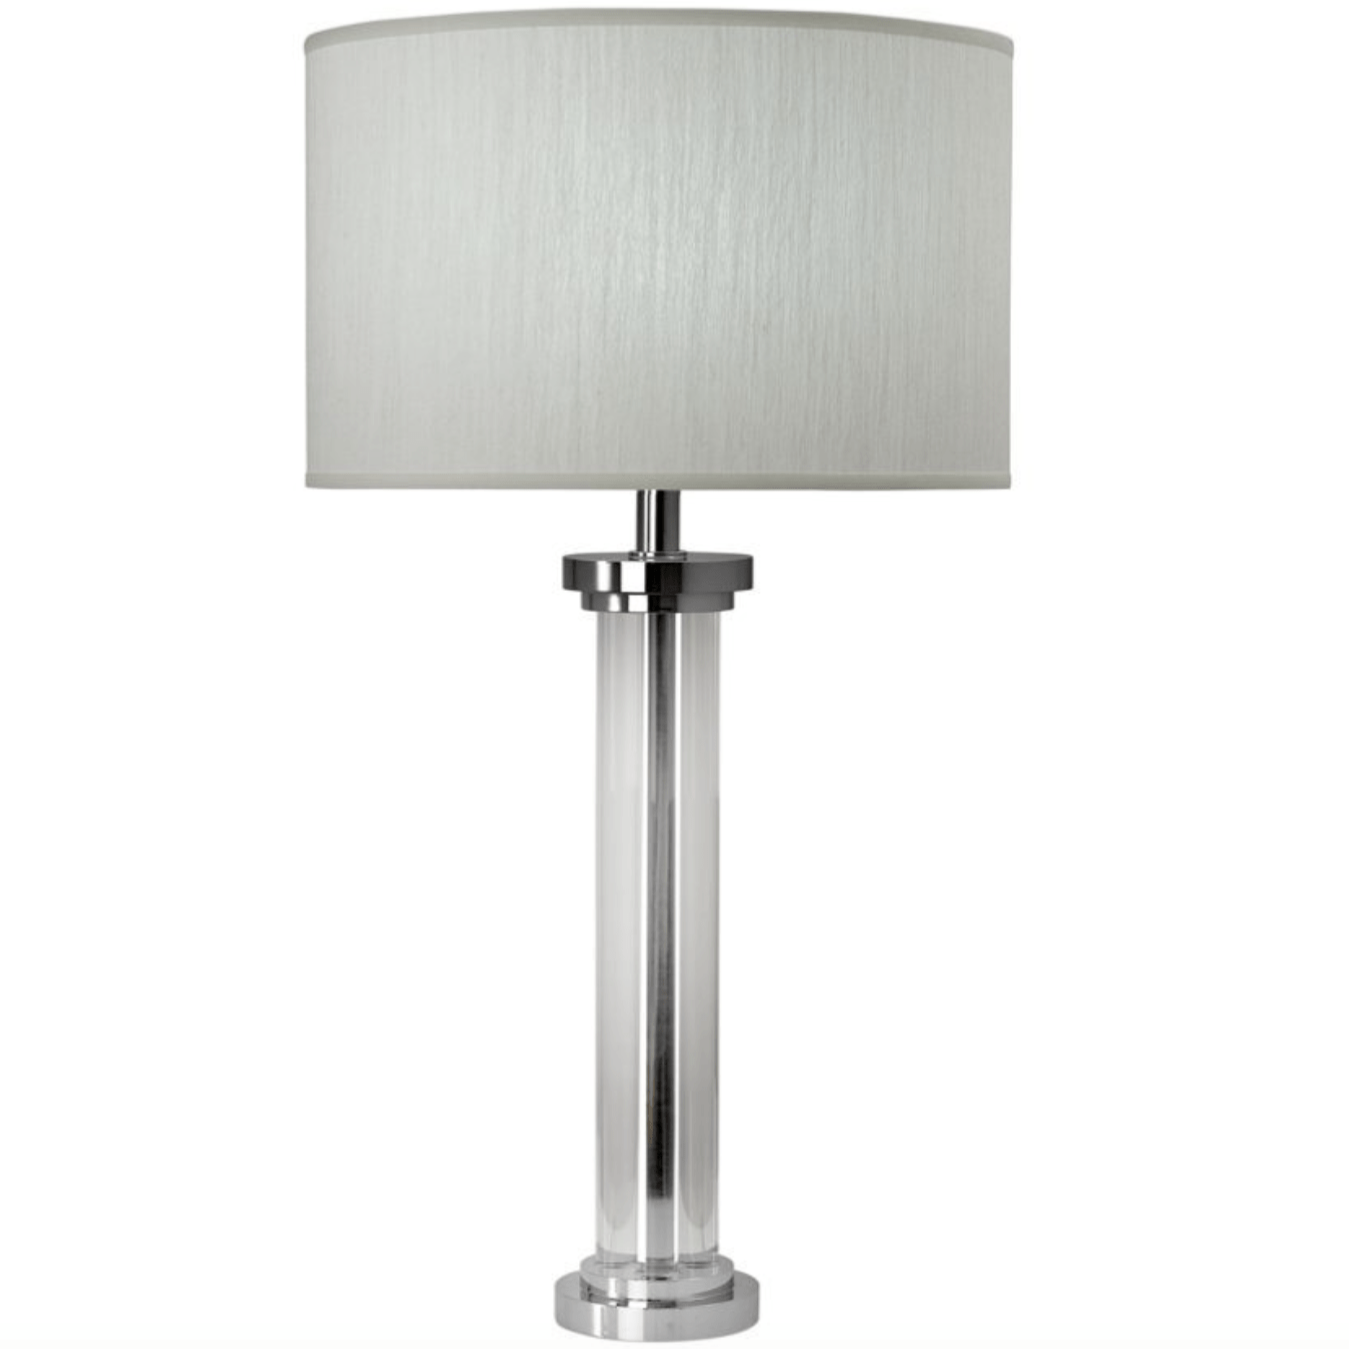 Acrylic Cylinder Shaped Table Lamp lighting shops lighting stores LED lights  lighting designer